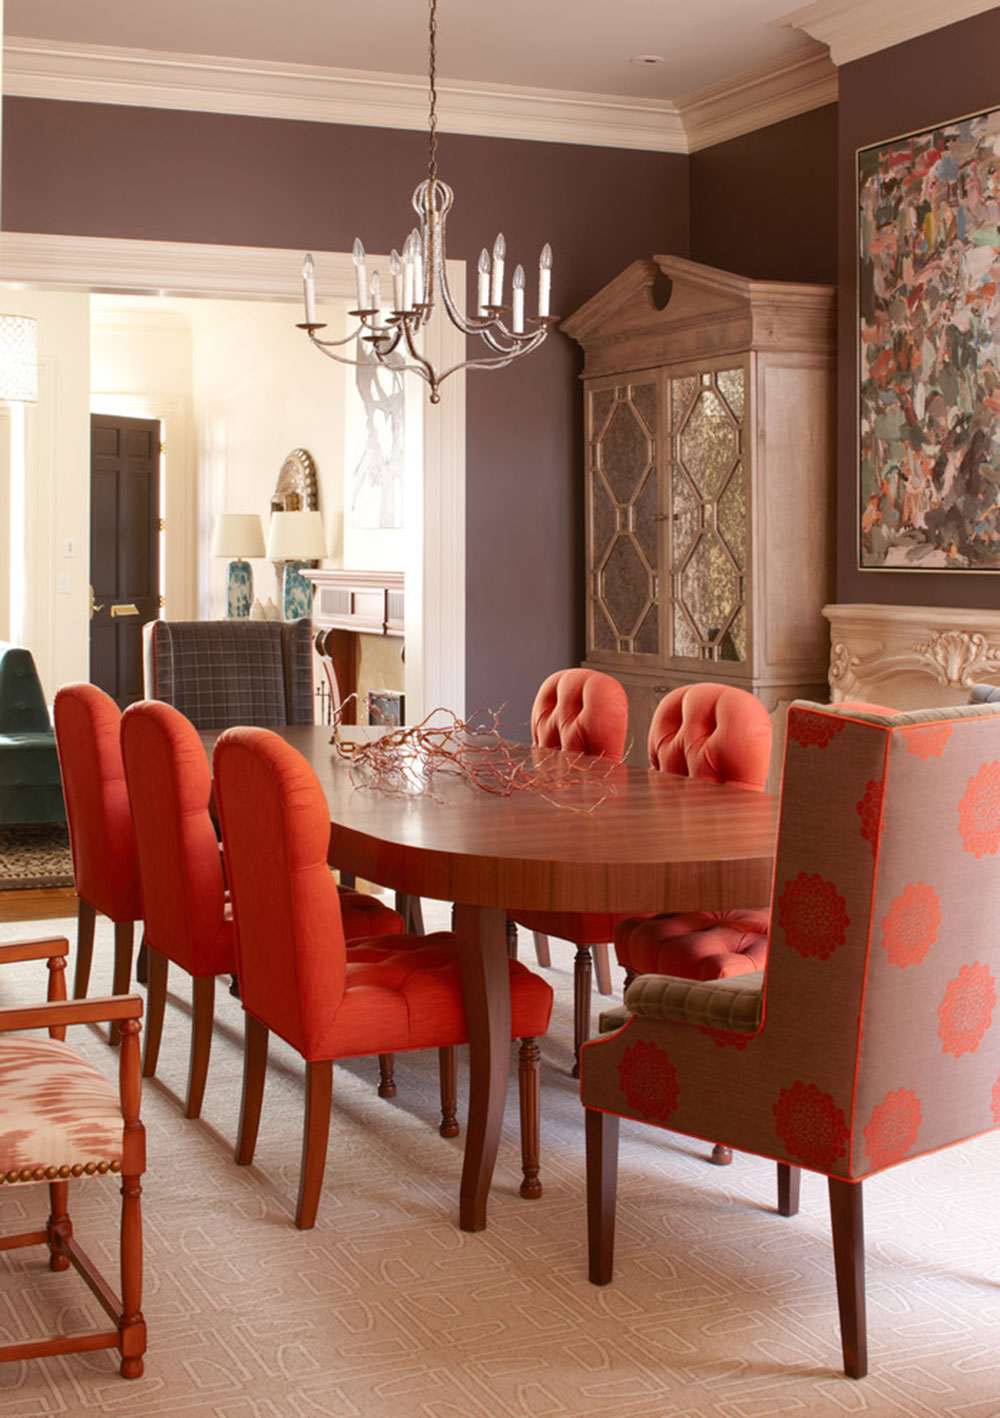 Tips For Choosing The Right Dining Chairs 12 Tips For Choosing The Right Dining Chairs